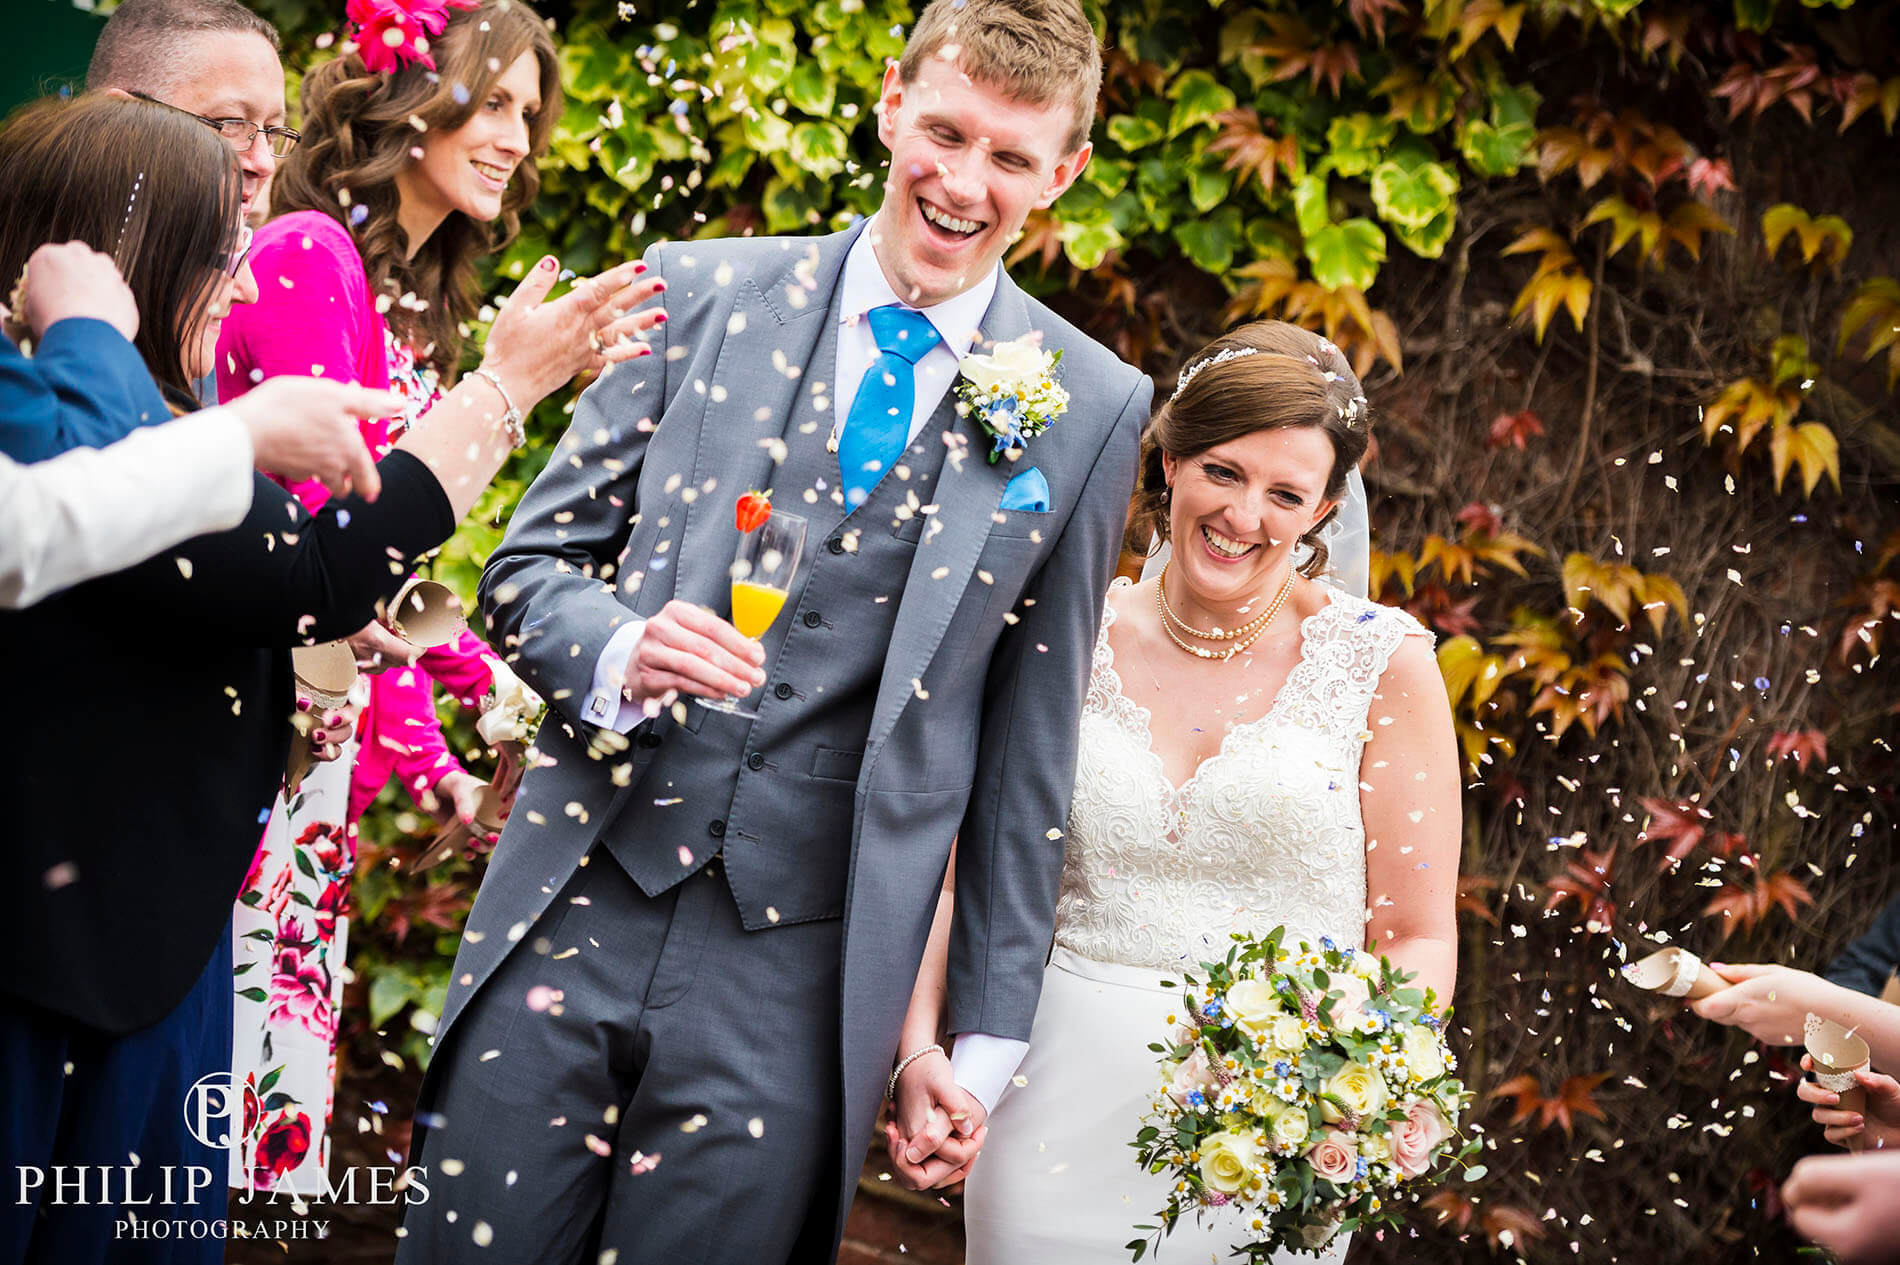 Philip James specializing in Wedding Photography Birmingham - Moments (7 of 170)